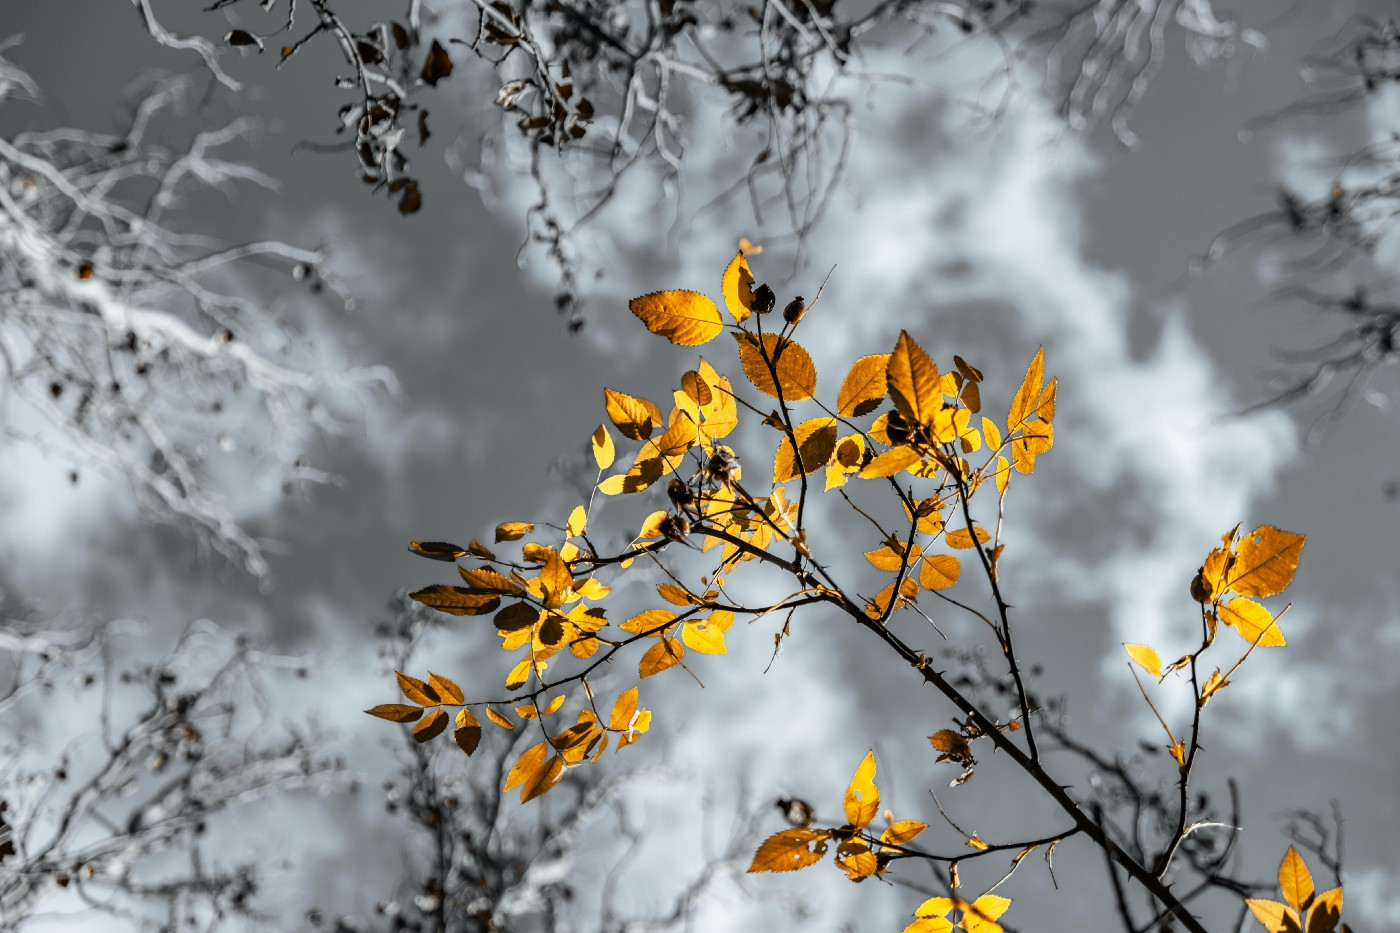 Golden leaves on a branch with a black&white background.